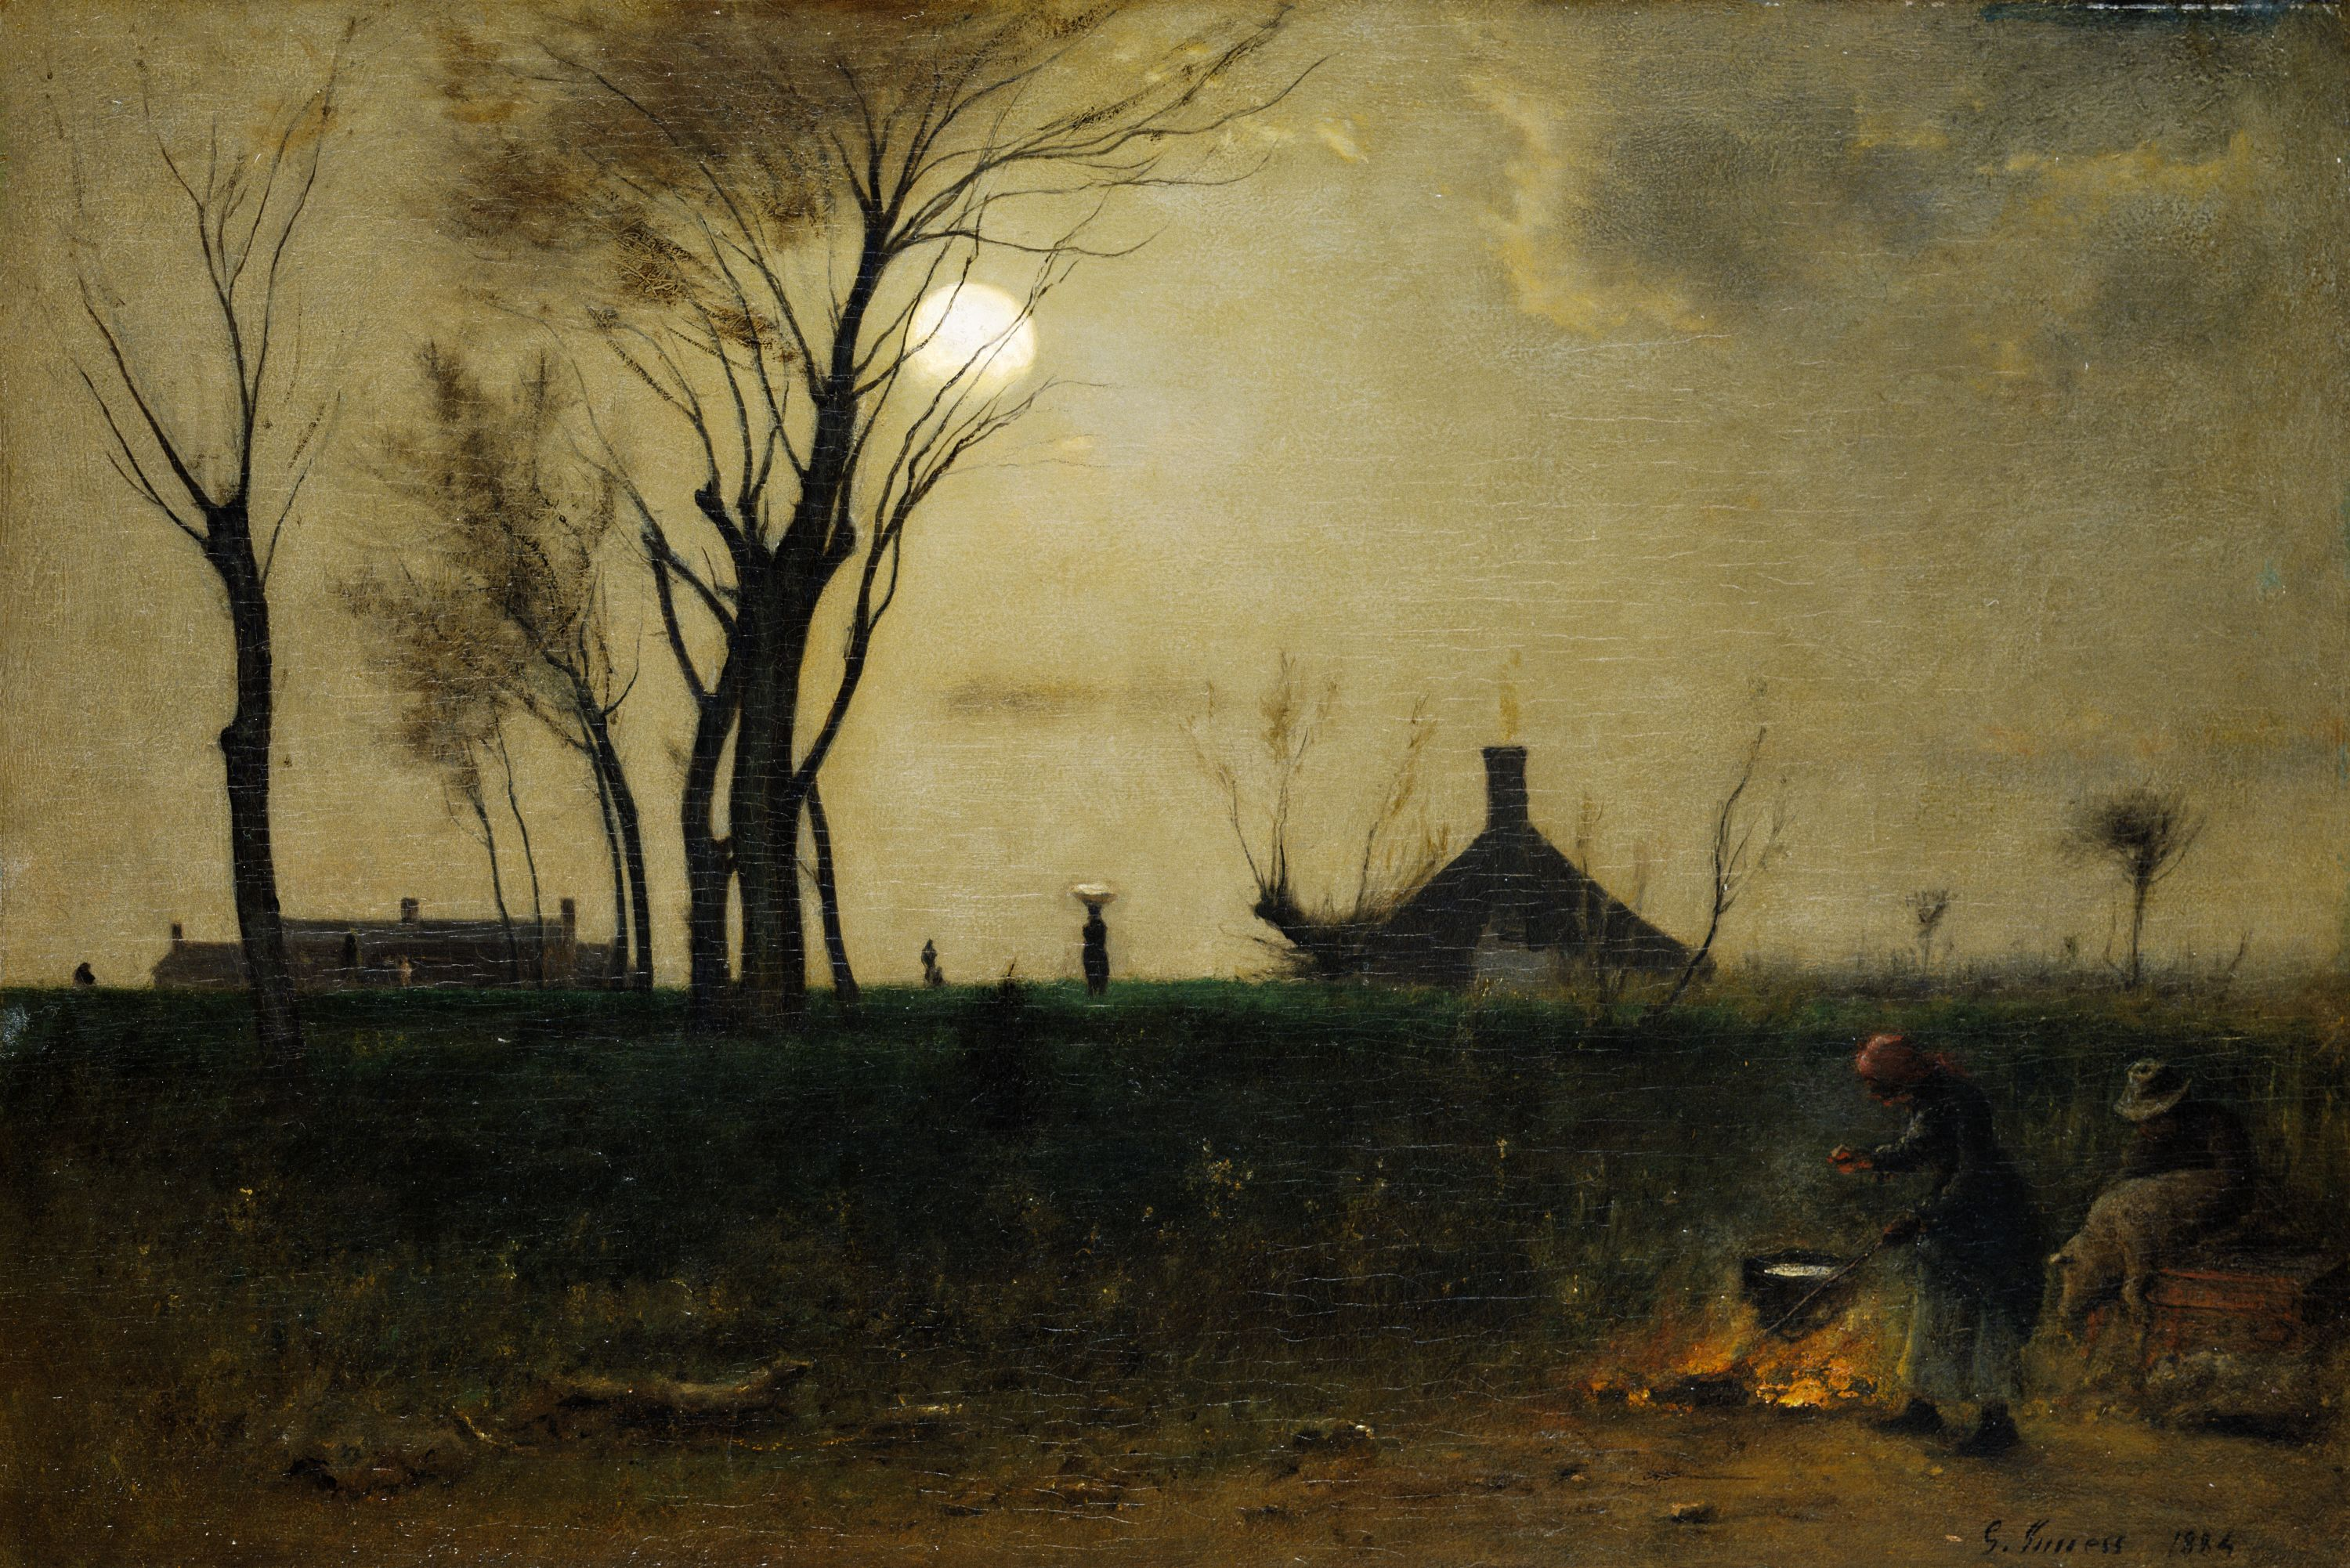 Not only does the moon itself have a haunting quality, but this painting also reflects the somber mood of the nation during the recover of the Civil War. The moon highlights the trees and emphasizes the unity between land and people.  // American Galleries